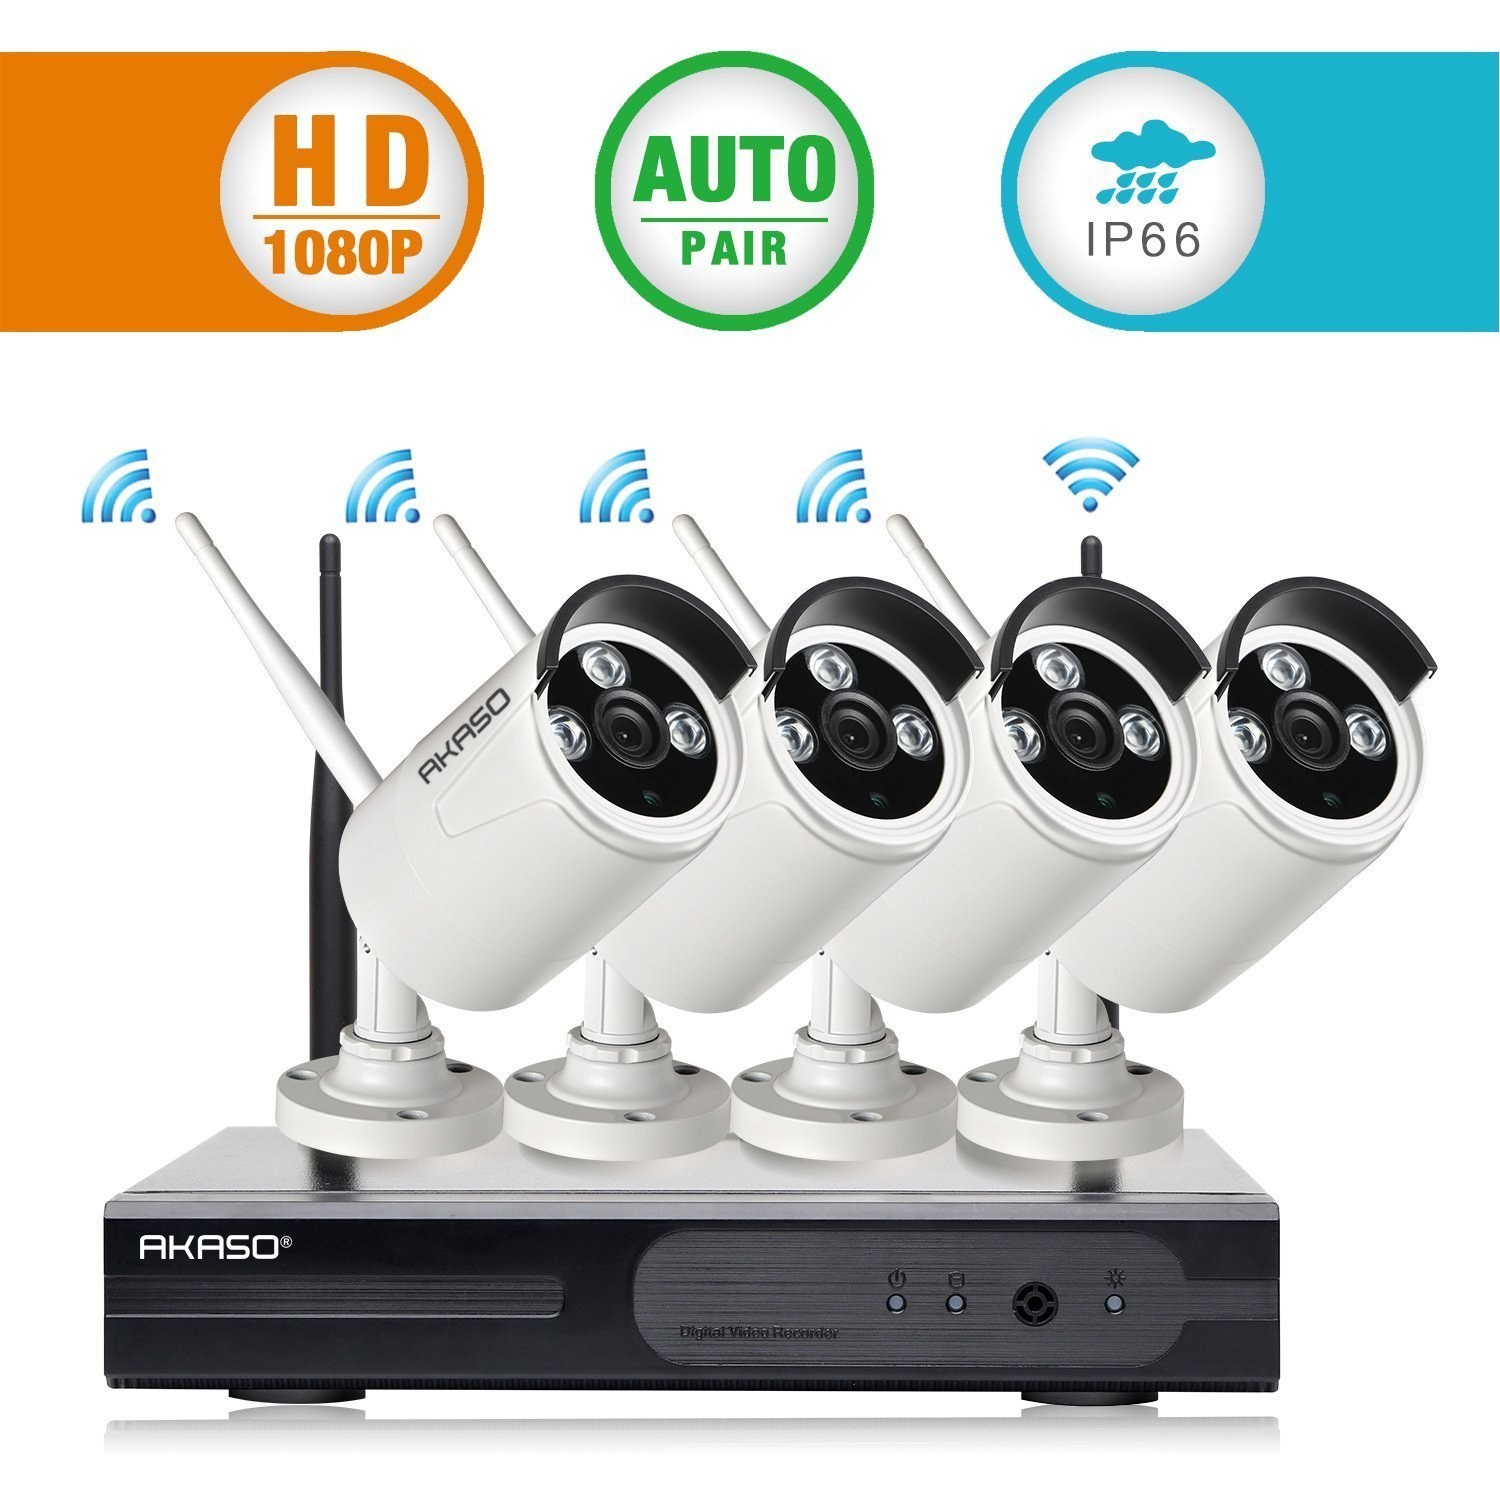 AKASO 4CH 1080P Wireless Network IP Security Camera System WIFI NVR Kits, 4PCS Wireless Outdoor Bullet IP Cameras, P2P, Night Vision 65ft, Auto Pairing